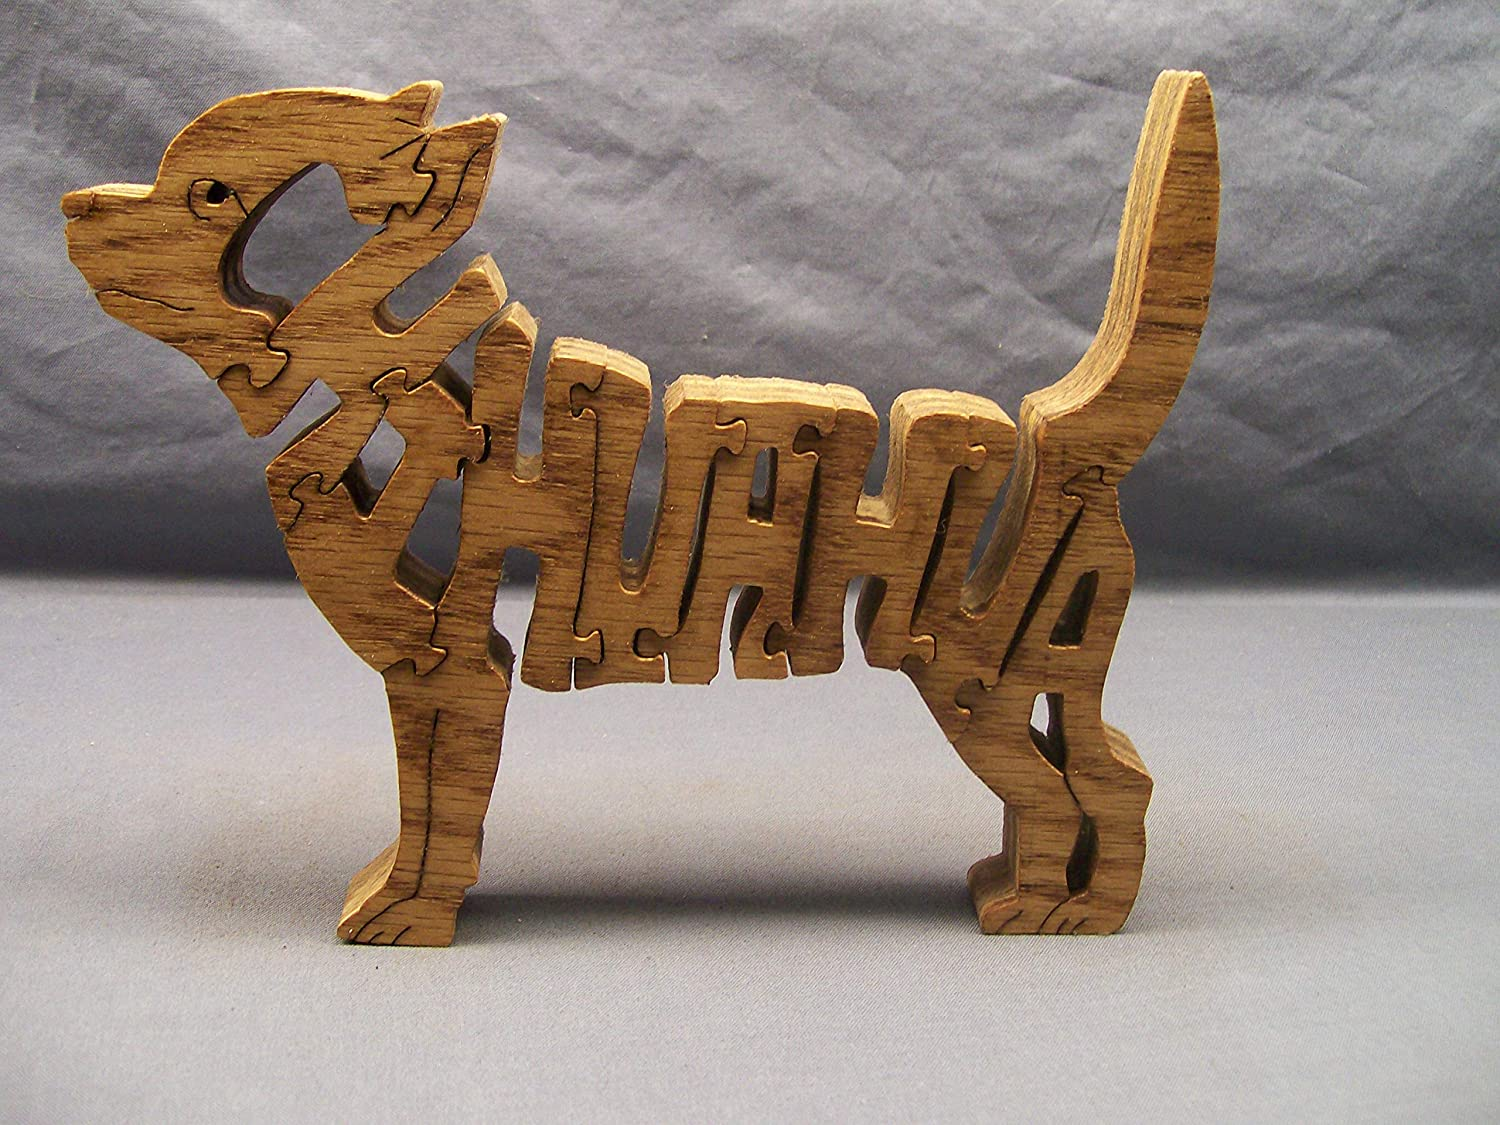 wooden Chihuahua dog puzzle